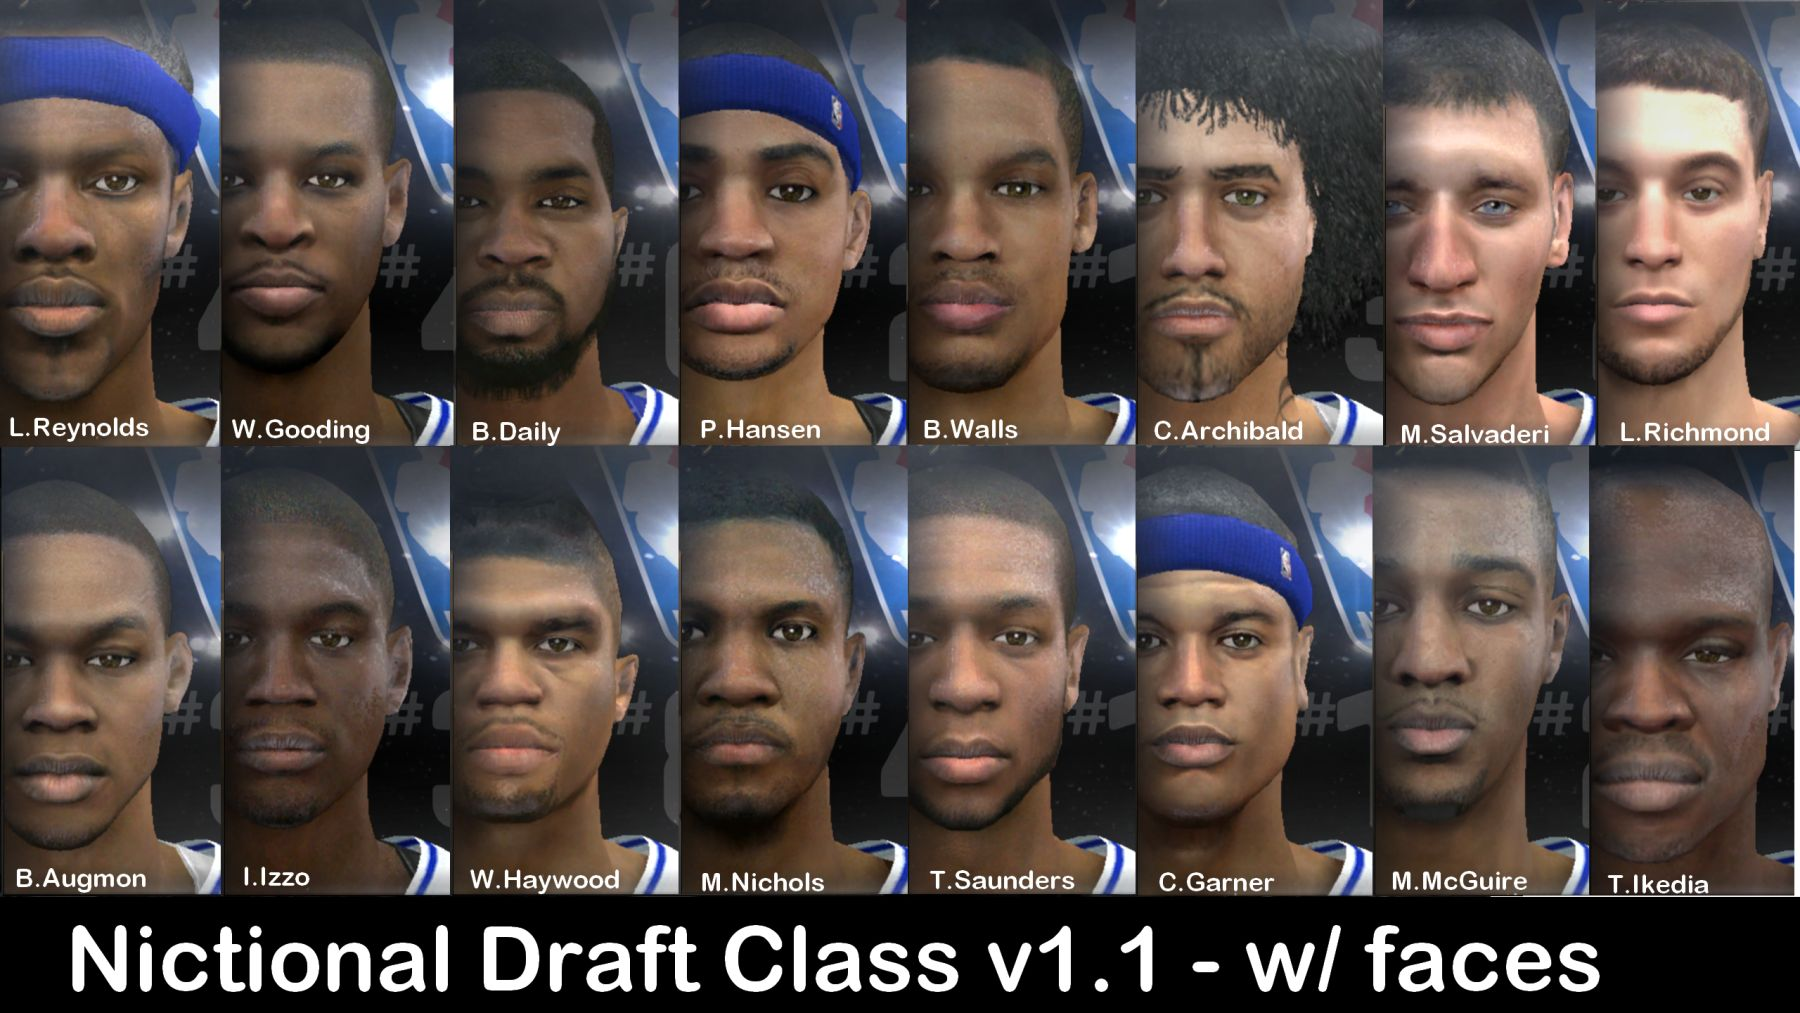 Fictional Draft Class with Realistic Cyberfaces